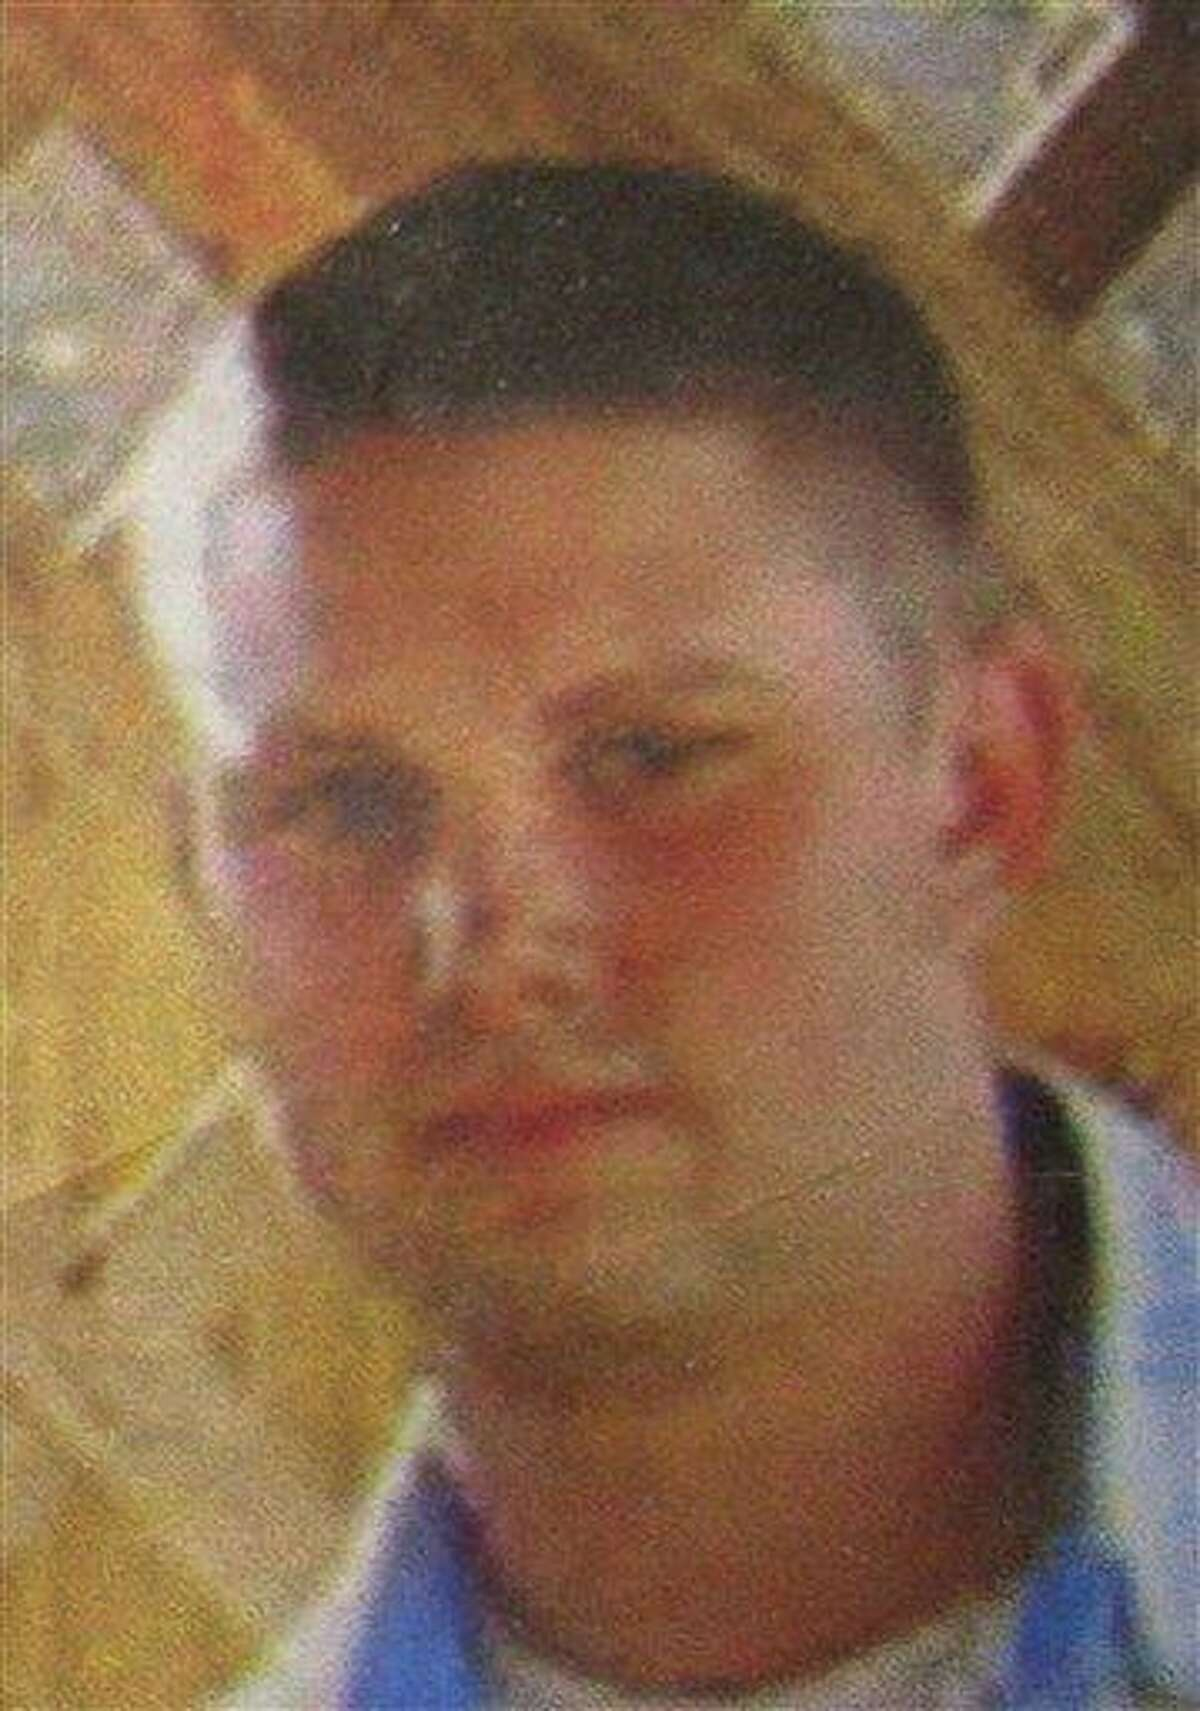 This photo, displayed on a leaflet that was distributed by the U.S. military to civilians in Logar province, east of Kabul, Afghanistan, on July 25, 2010 shows a missing U.S. Navy sailor. The Navy identified the missing sailor as Petty Officer 3rd Class Jarod Newlove, a 25-year-old from the Seattle area. The Pentagon lists Newlove as